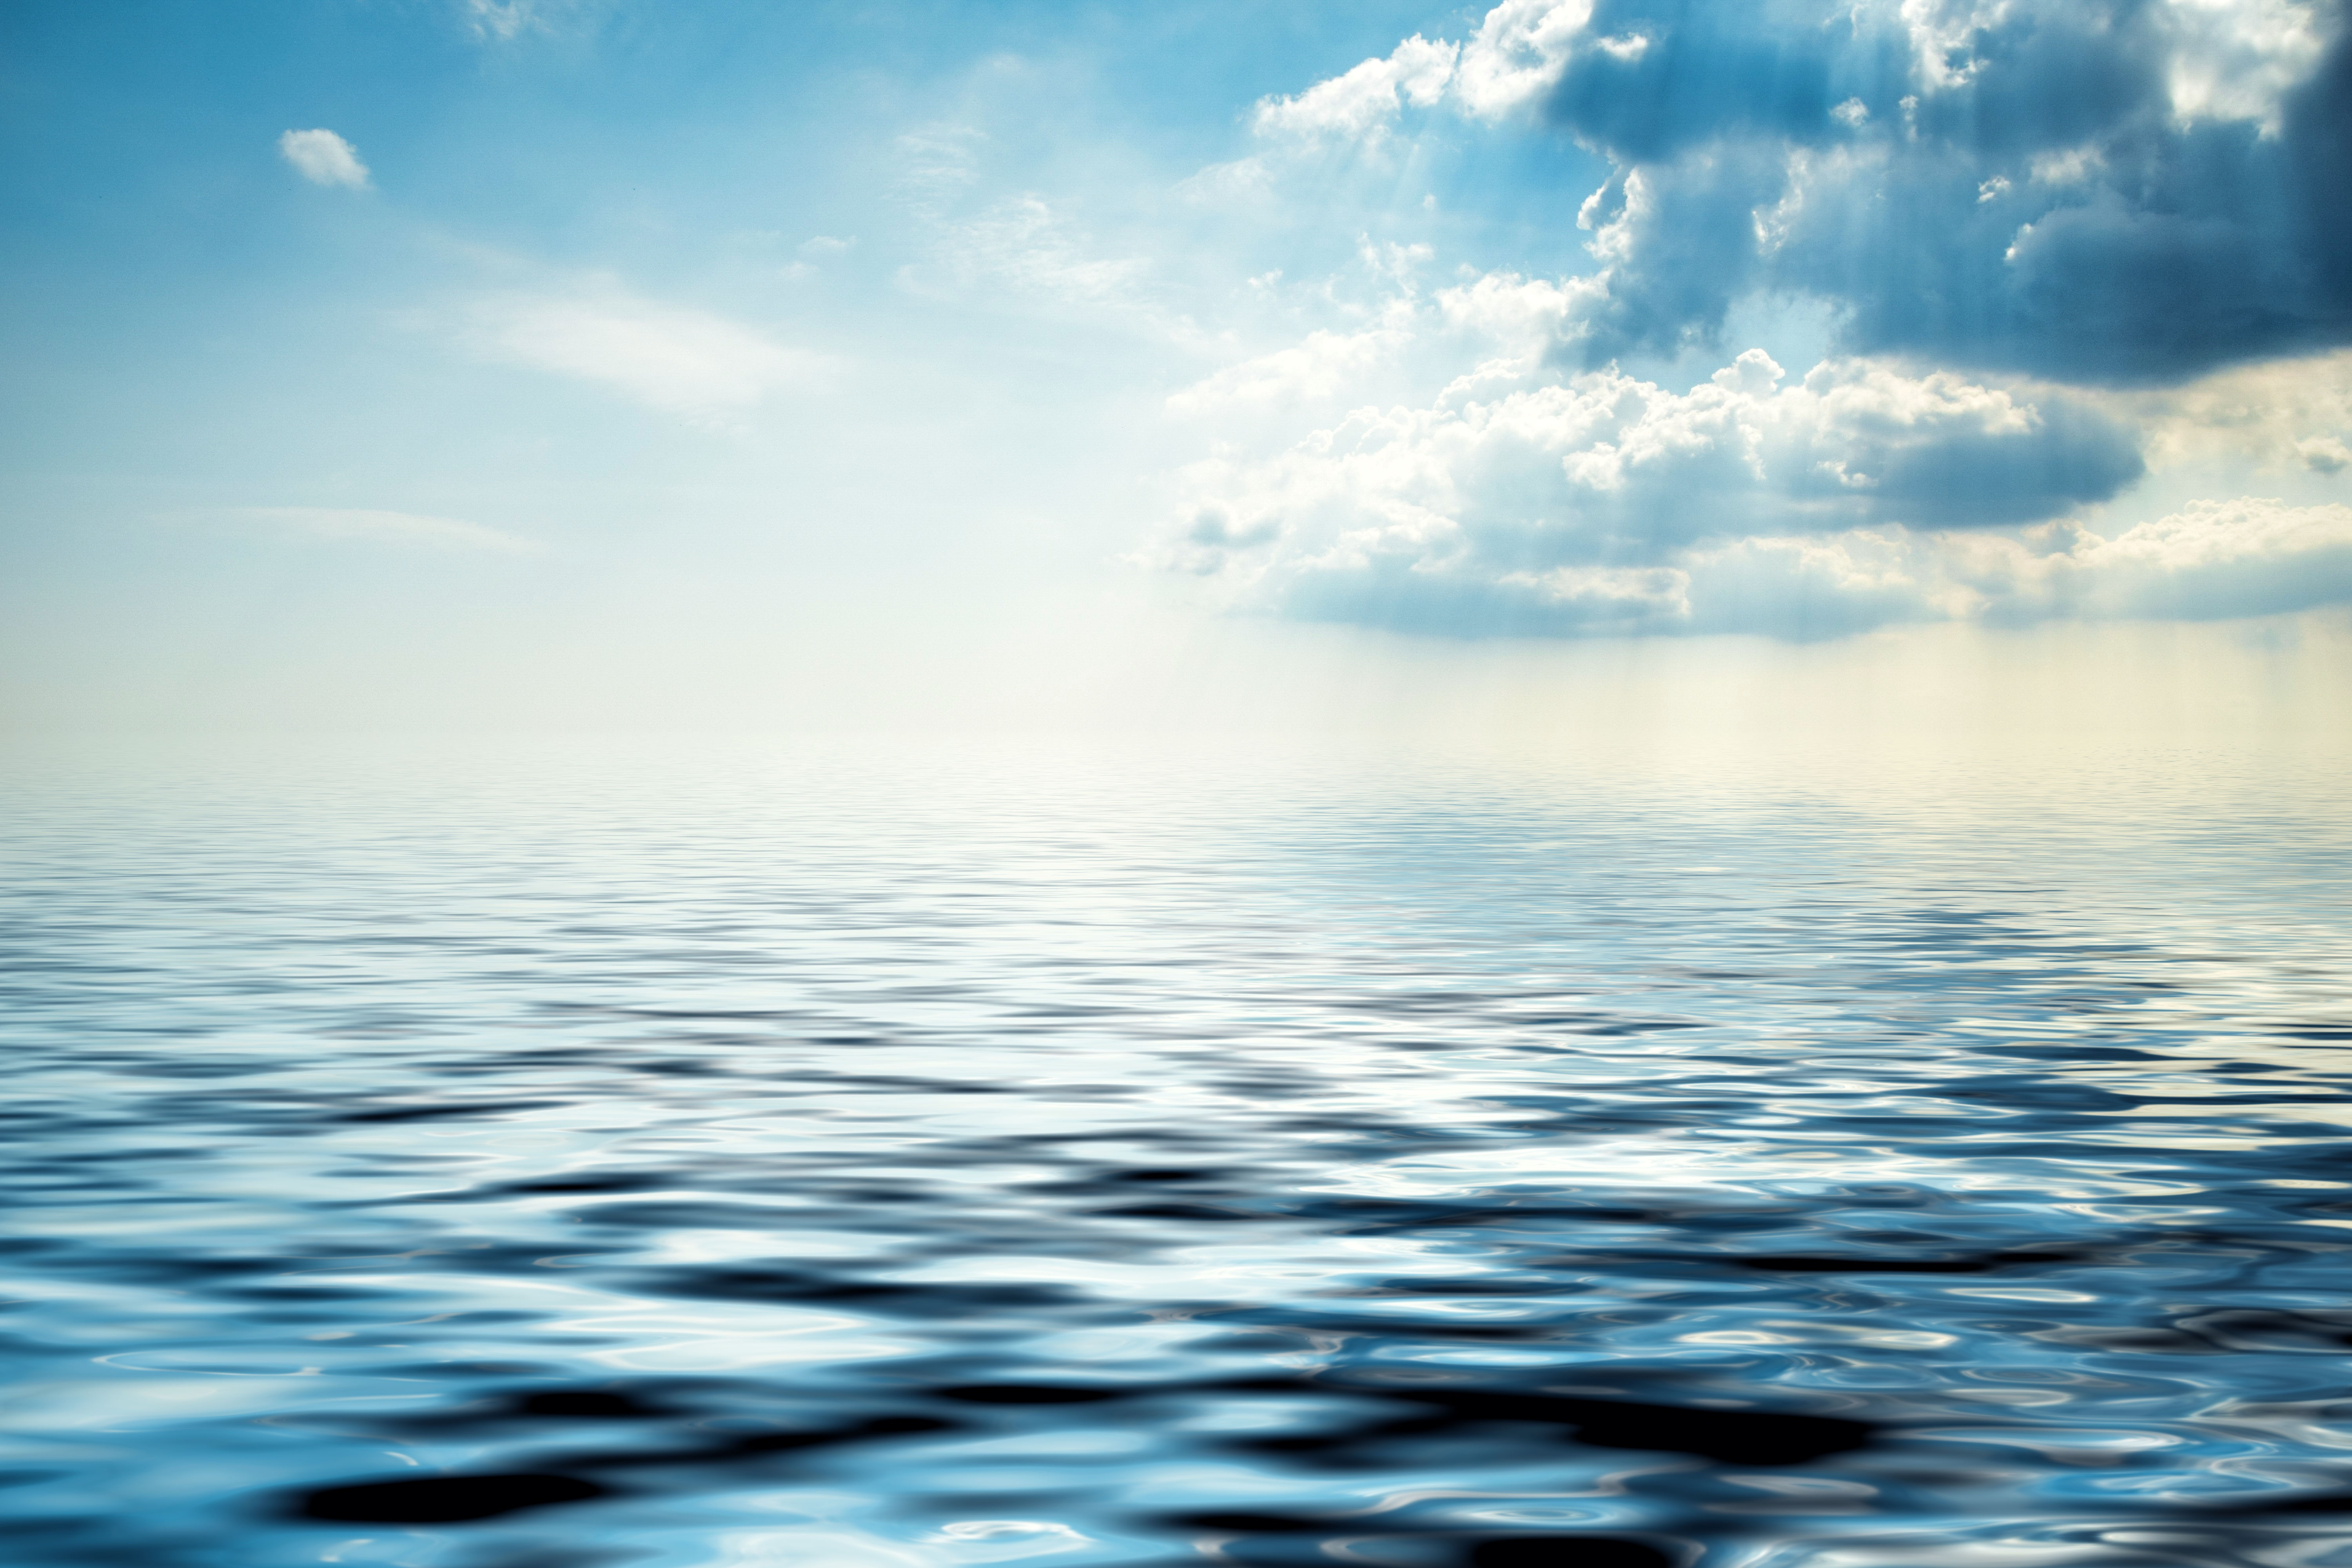 Lock Screen Wallpaper Hd Blue Body Of Water Under White Clouds 183 Free Stock Photo